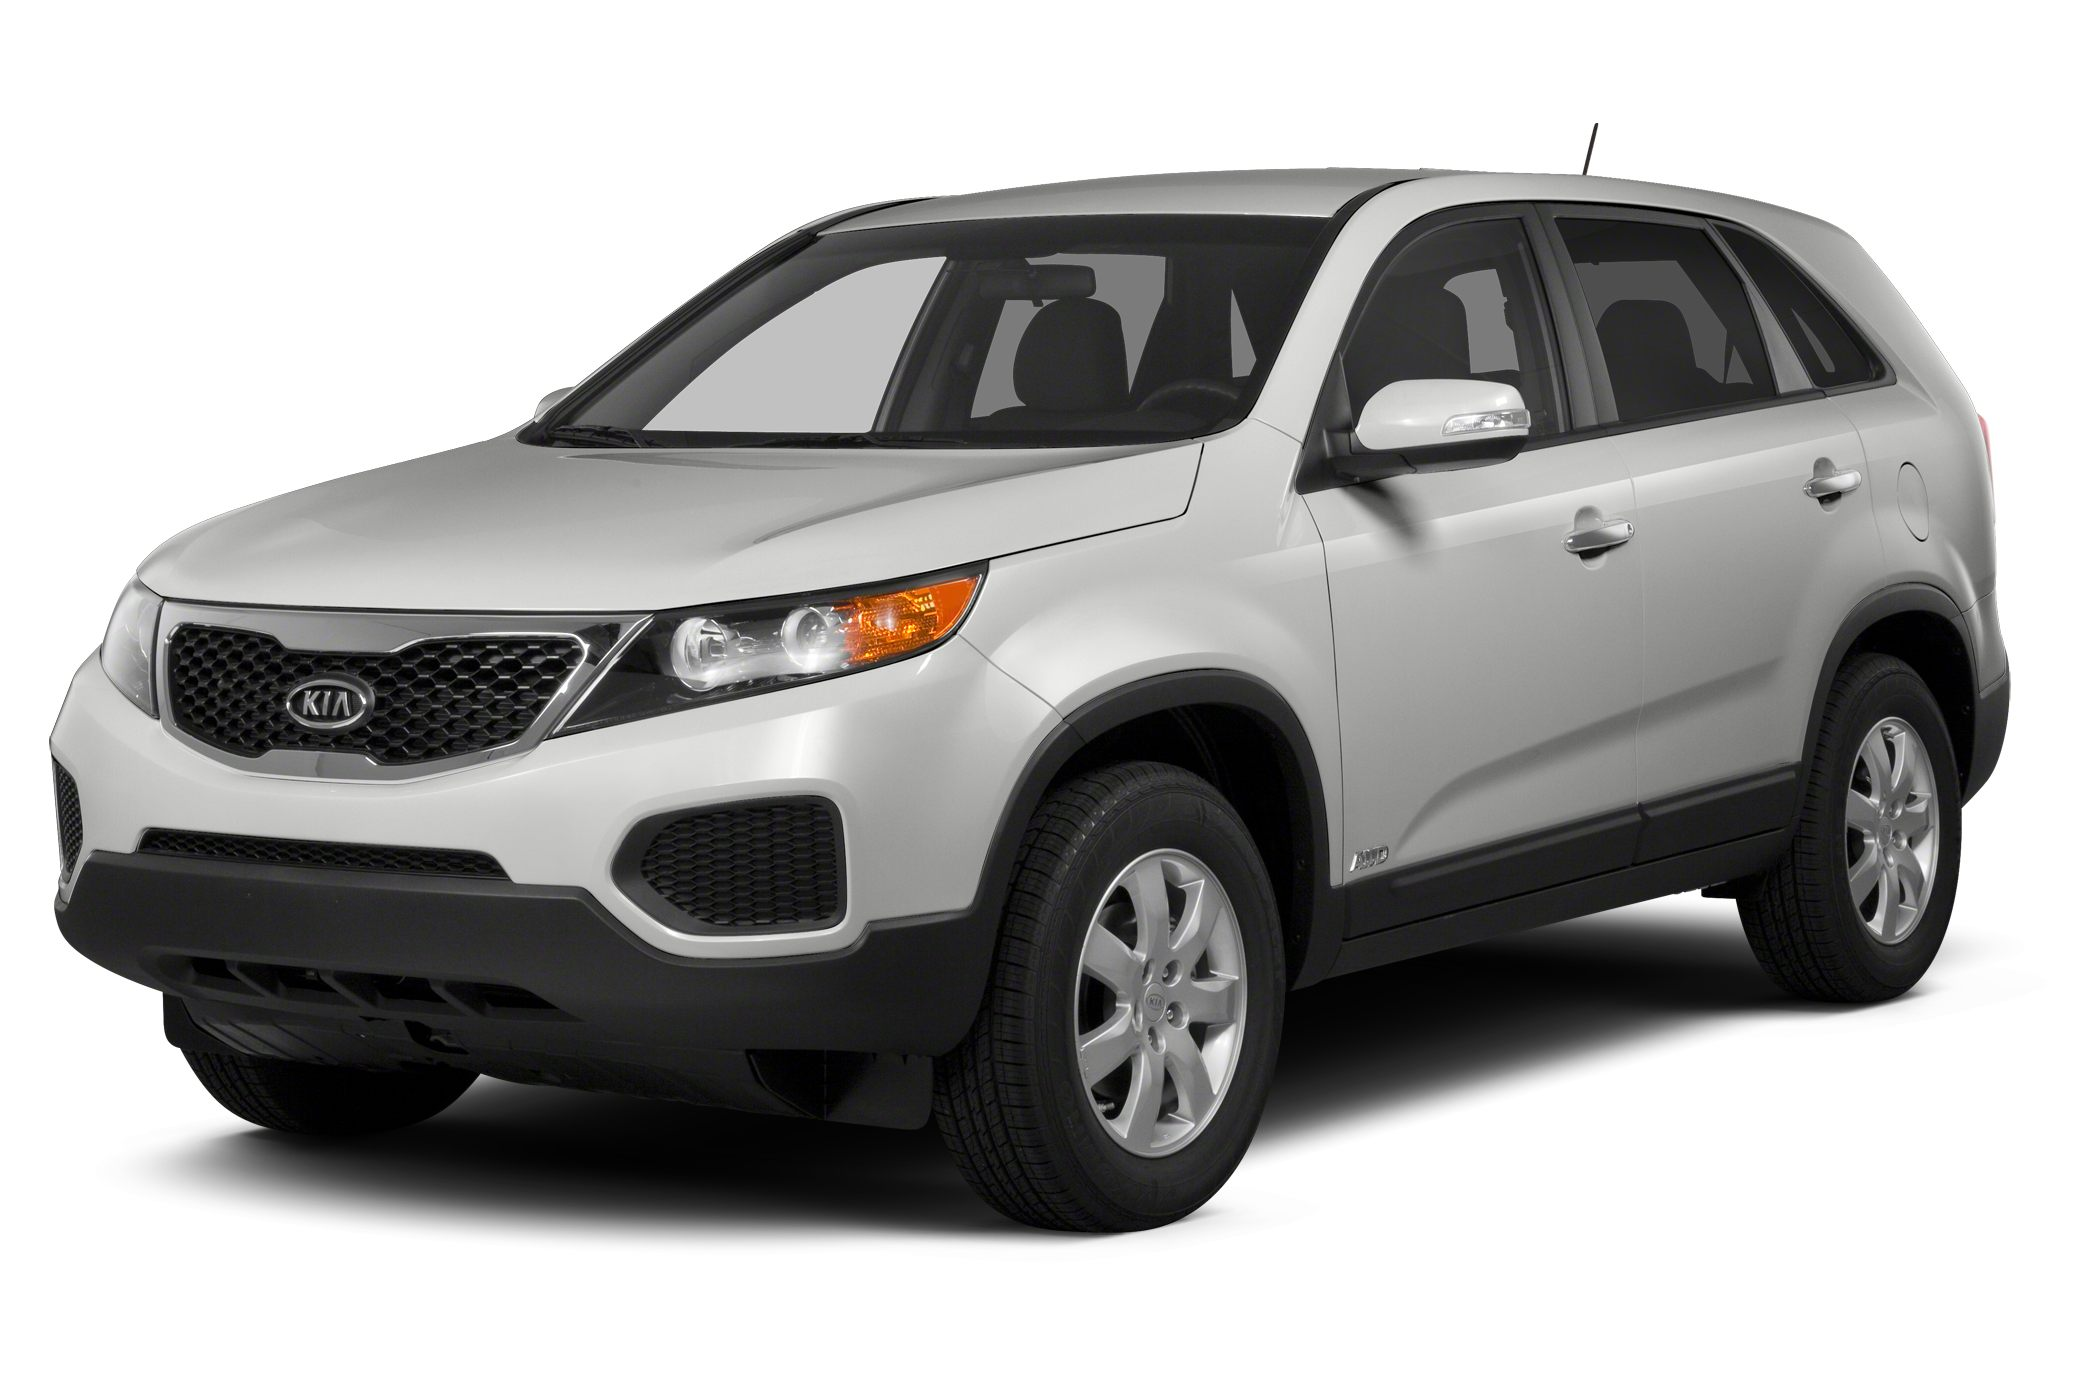 2013 Kia Sorento EX SUV for sale in Conroe for $0 with 24,885 miles